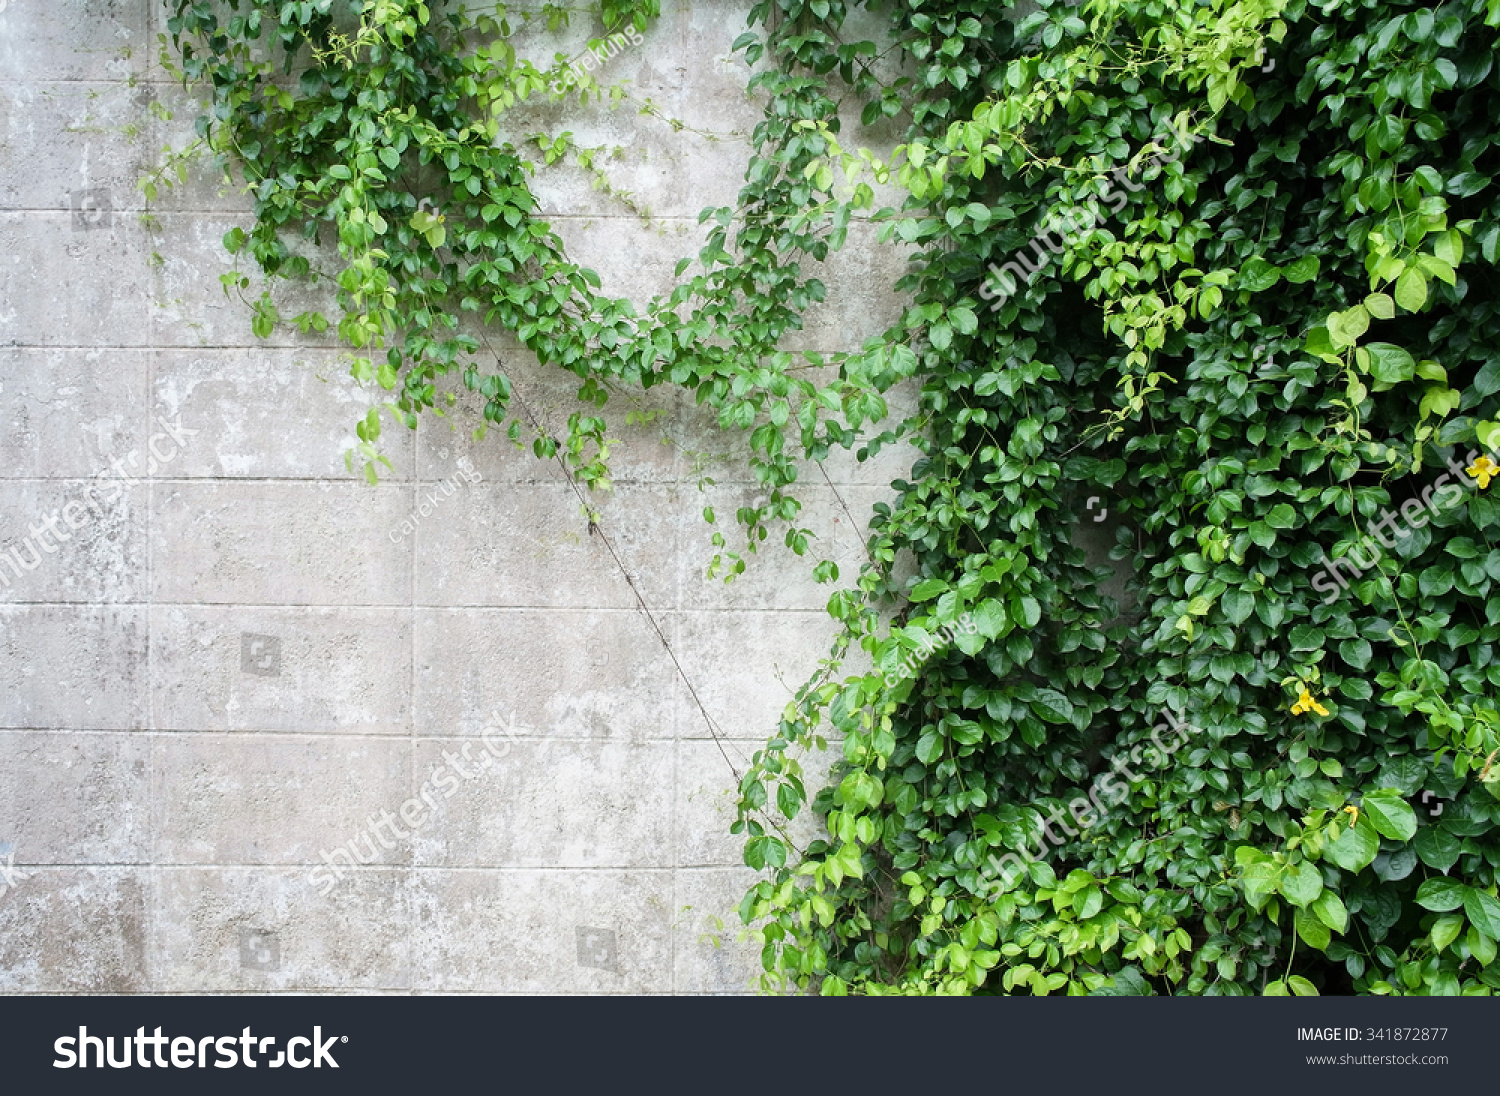 Abstract Plant Wall Background Green Creeper Stock Photo Edit Now 341872877